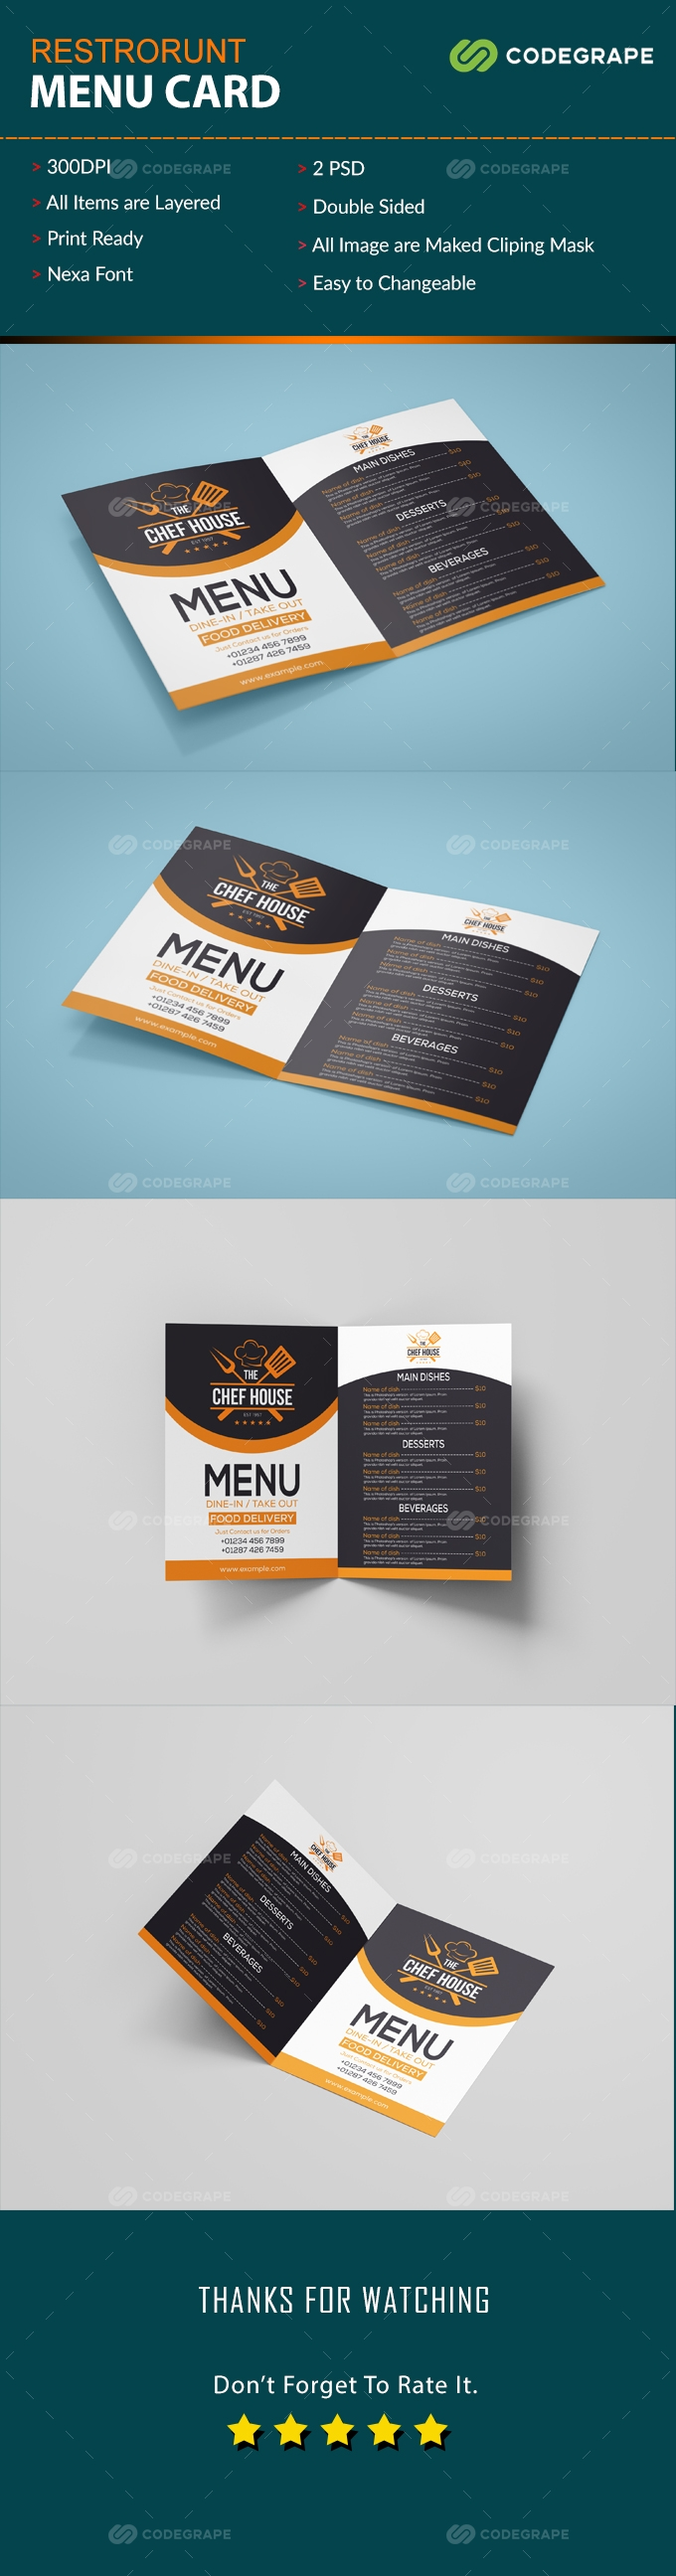 Restrorent Menu Card